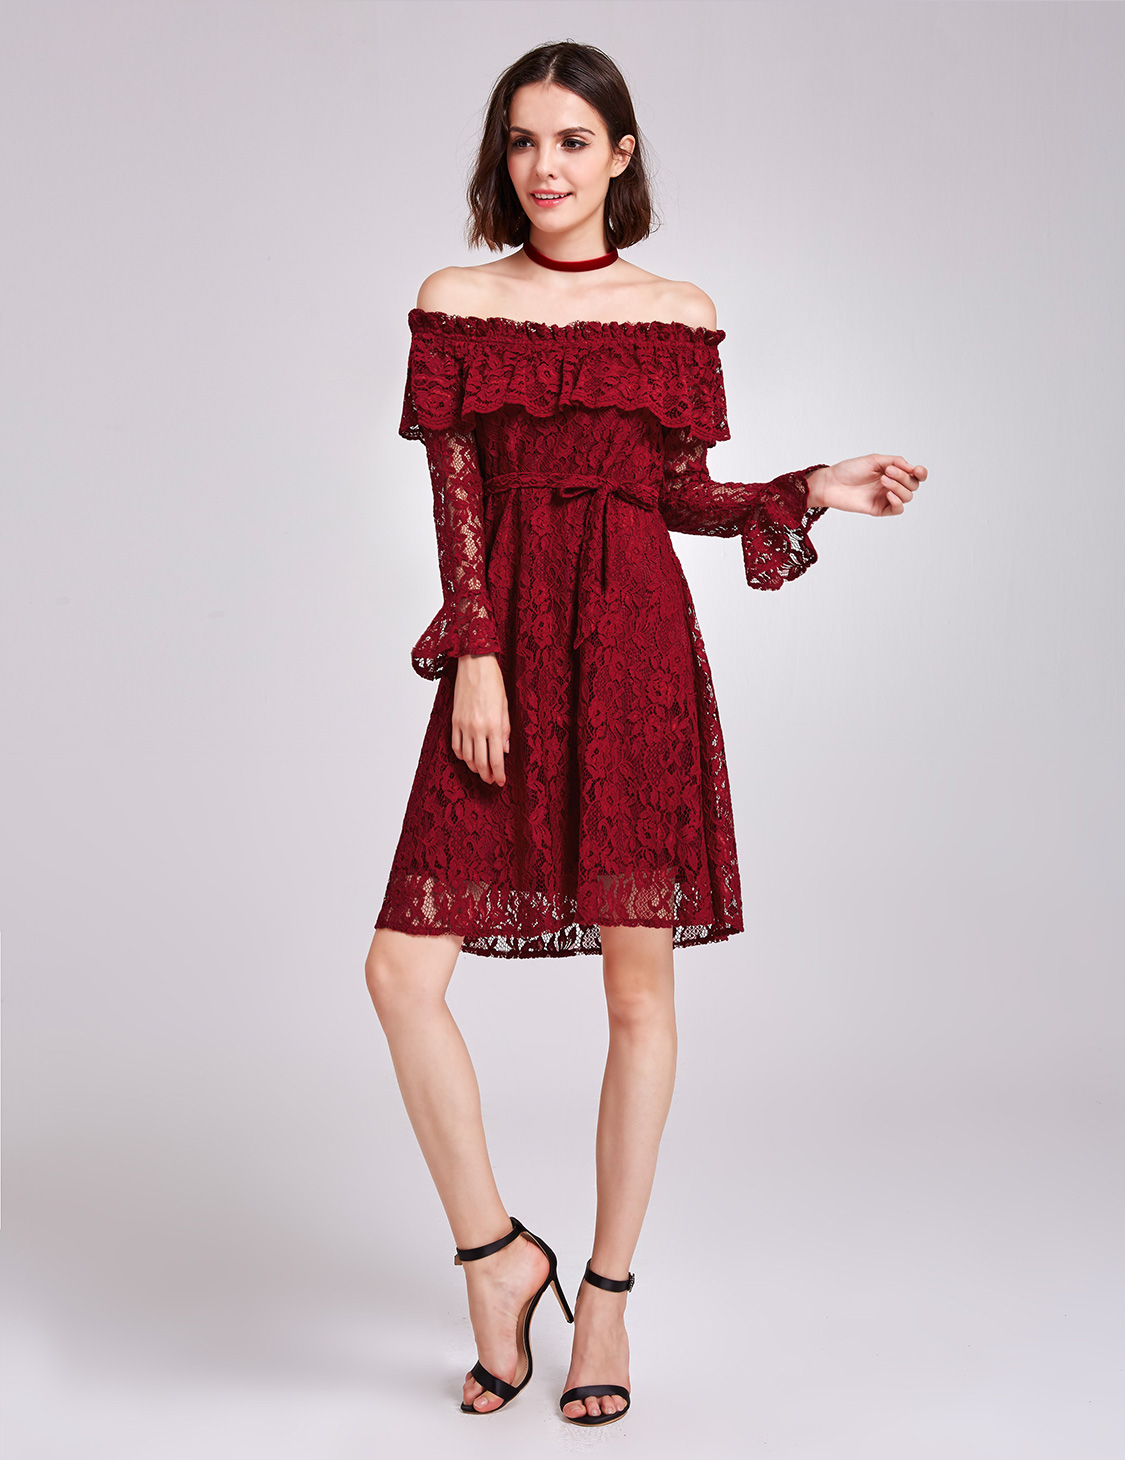 b55bfd27435a Alisa Pan US Burgundy Lace Party Dresses Off Shoulder Short Casual ...